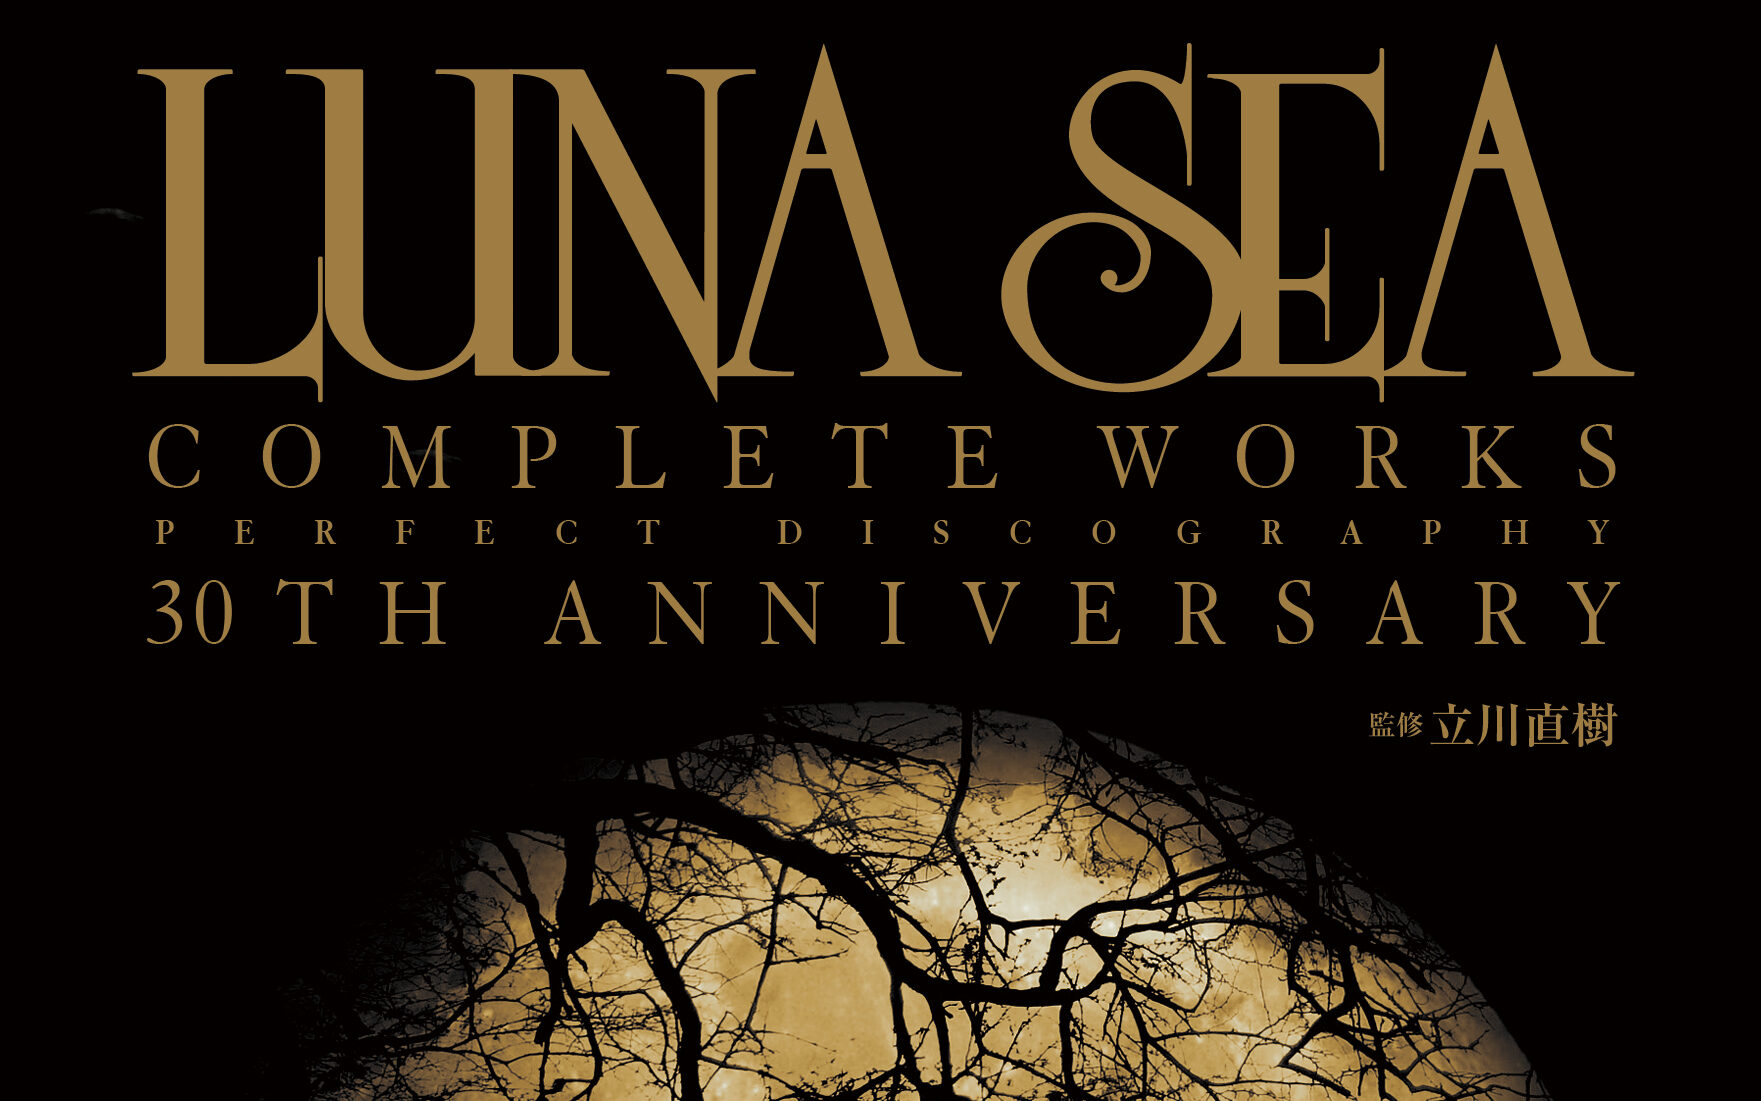 LUNA SEA COMPLETE WORKS